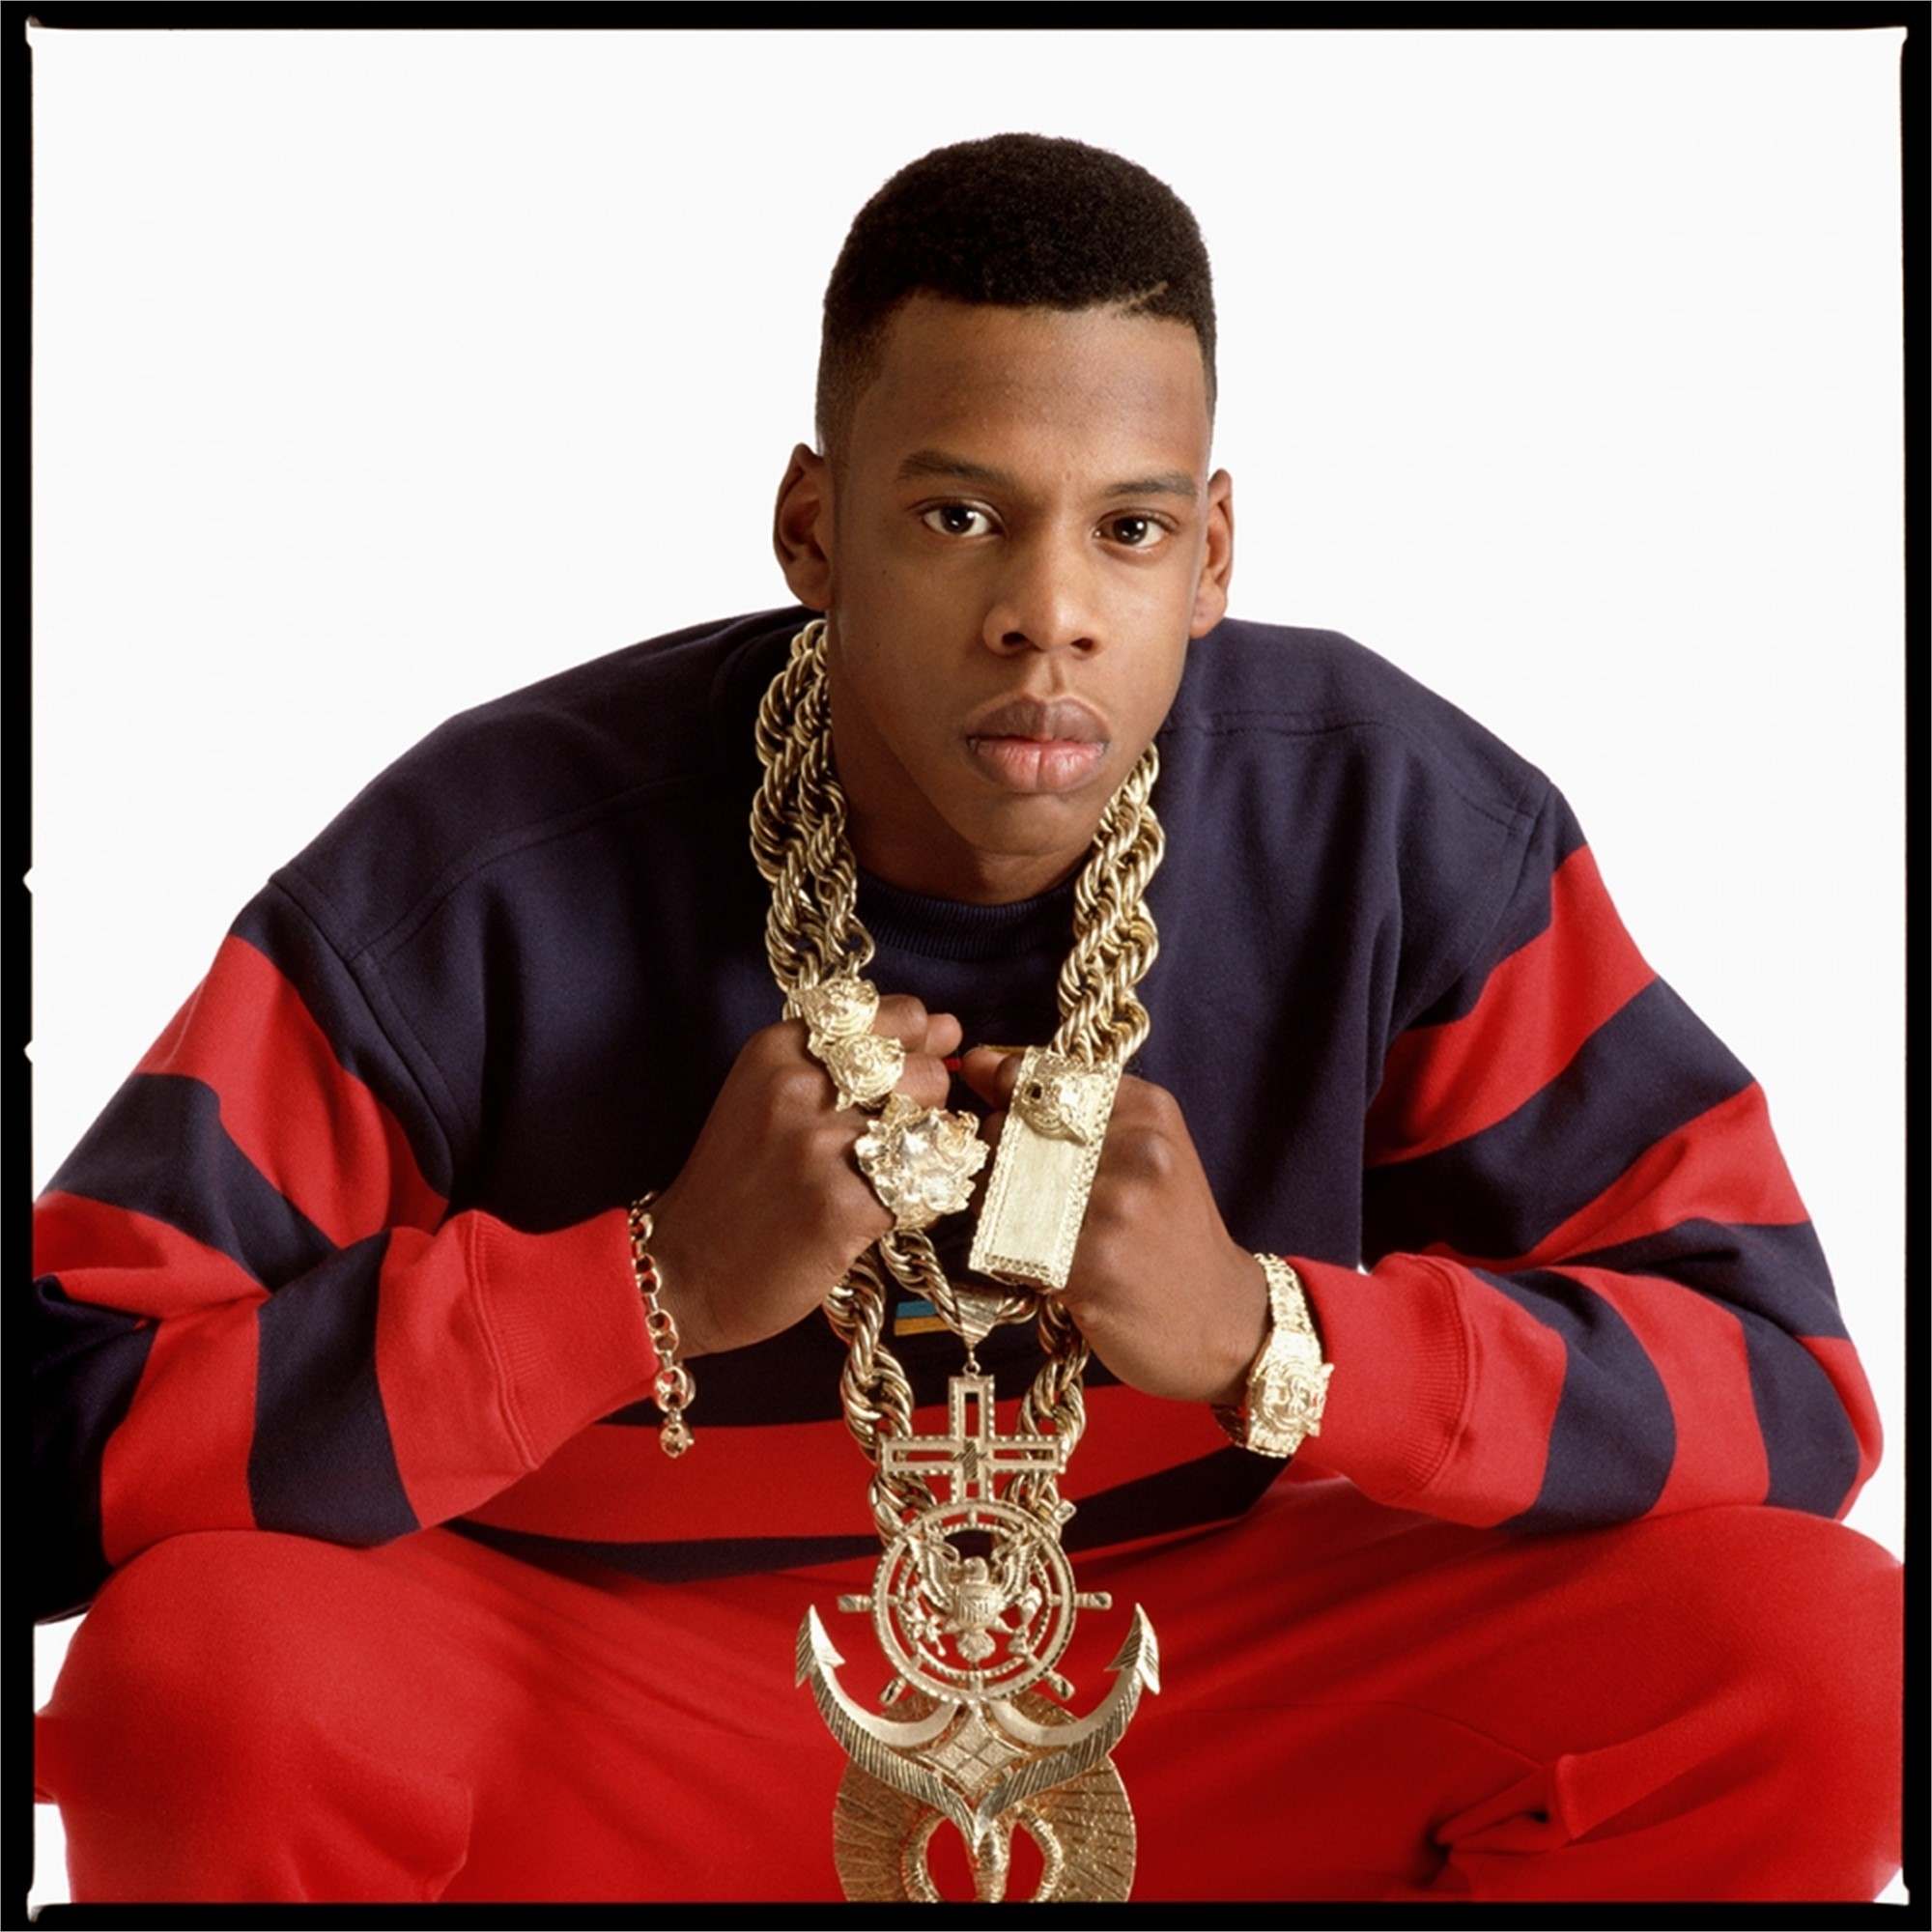 88217 Jay Z Red Sweater 1988 Color by Timothy White